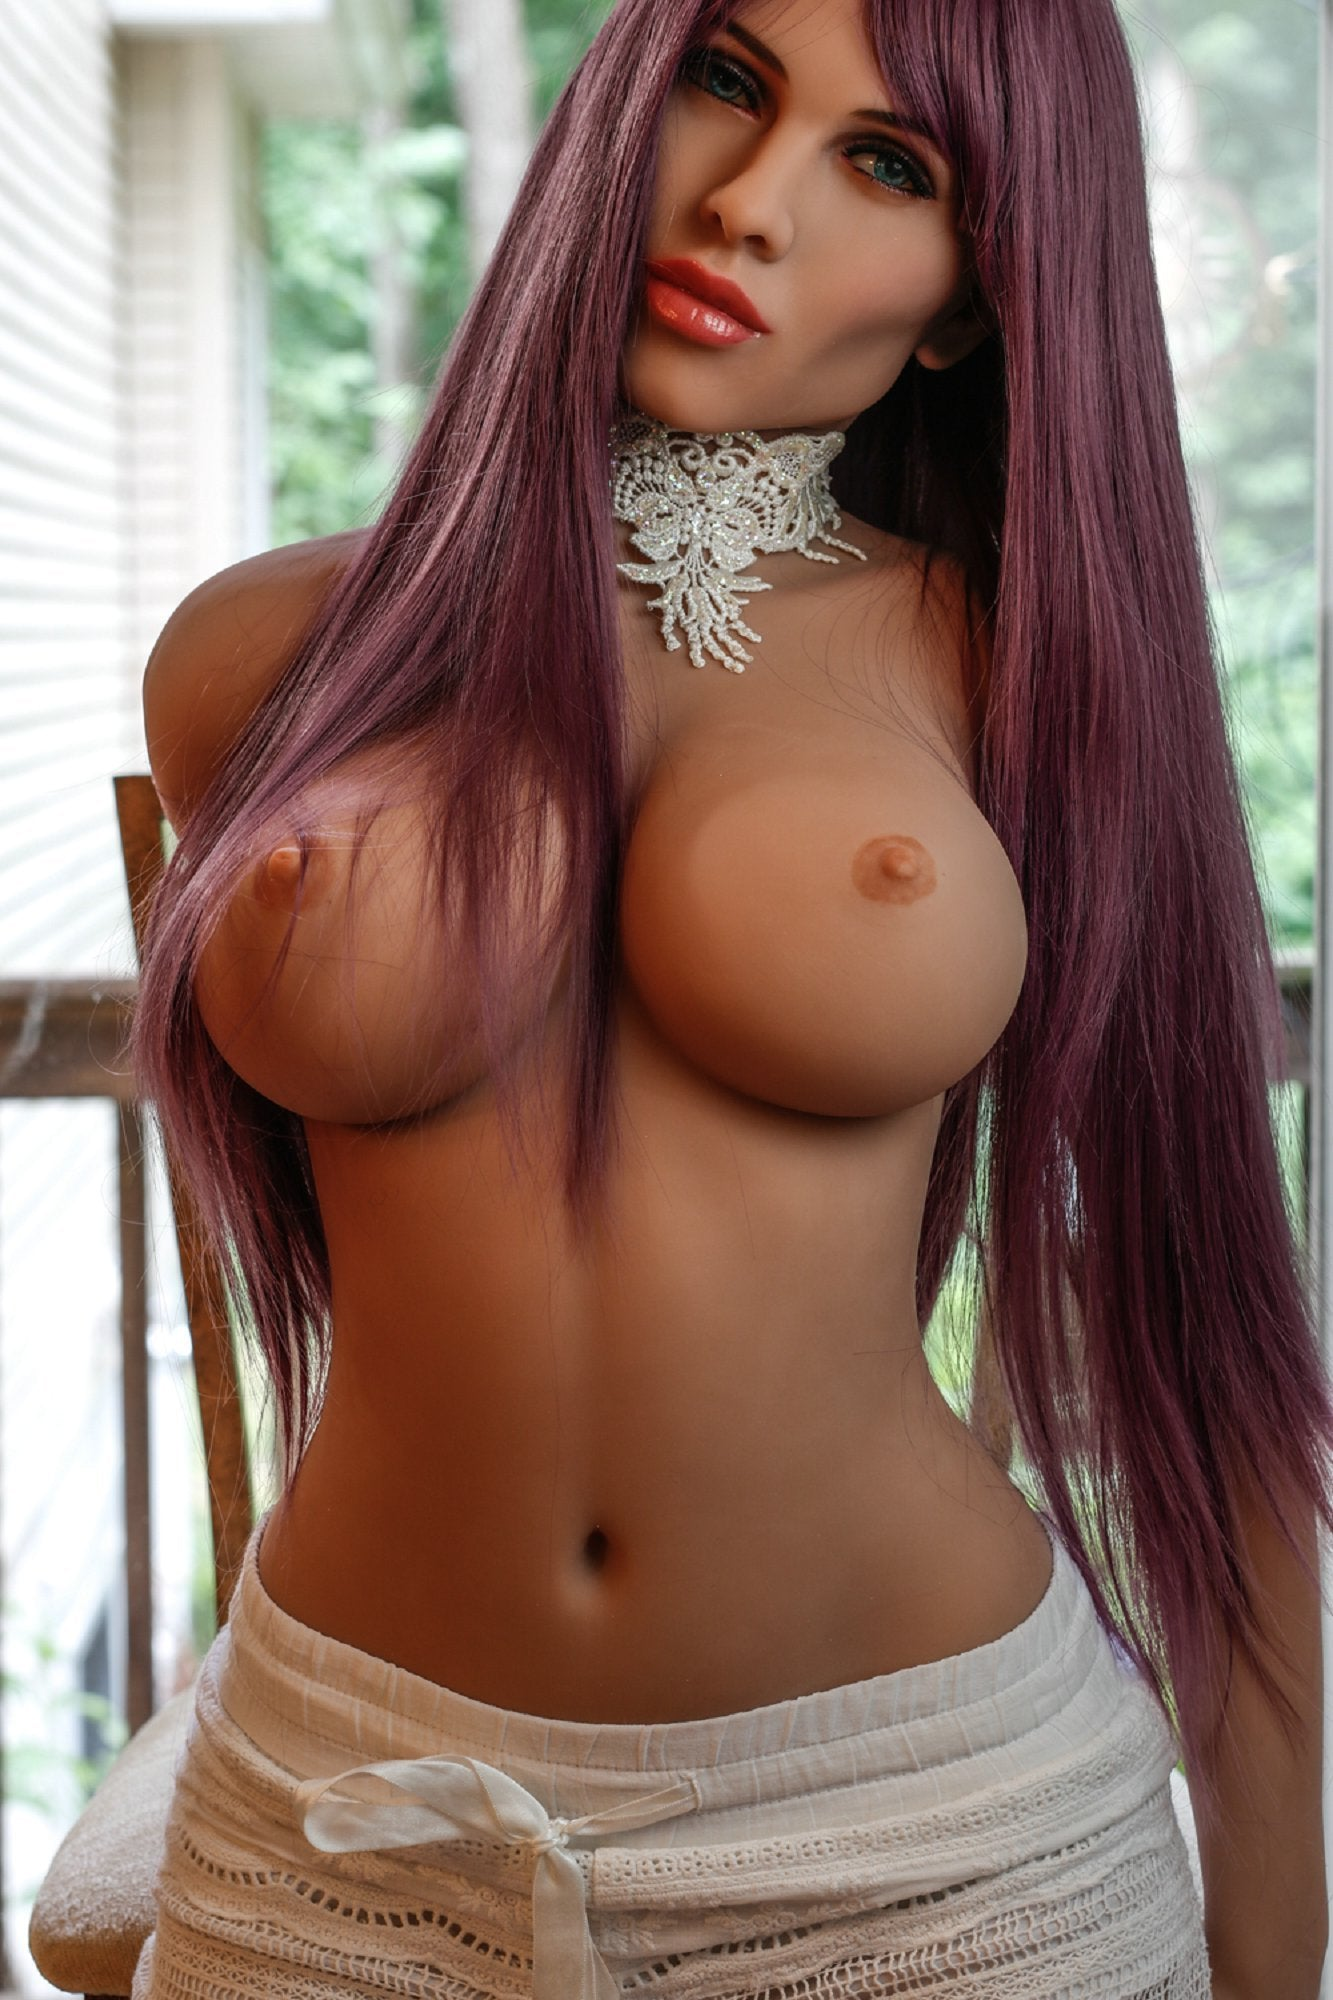 carmen 148cm medium tits athletic red hair tan skin tpe yl sex doll(3)